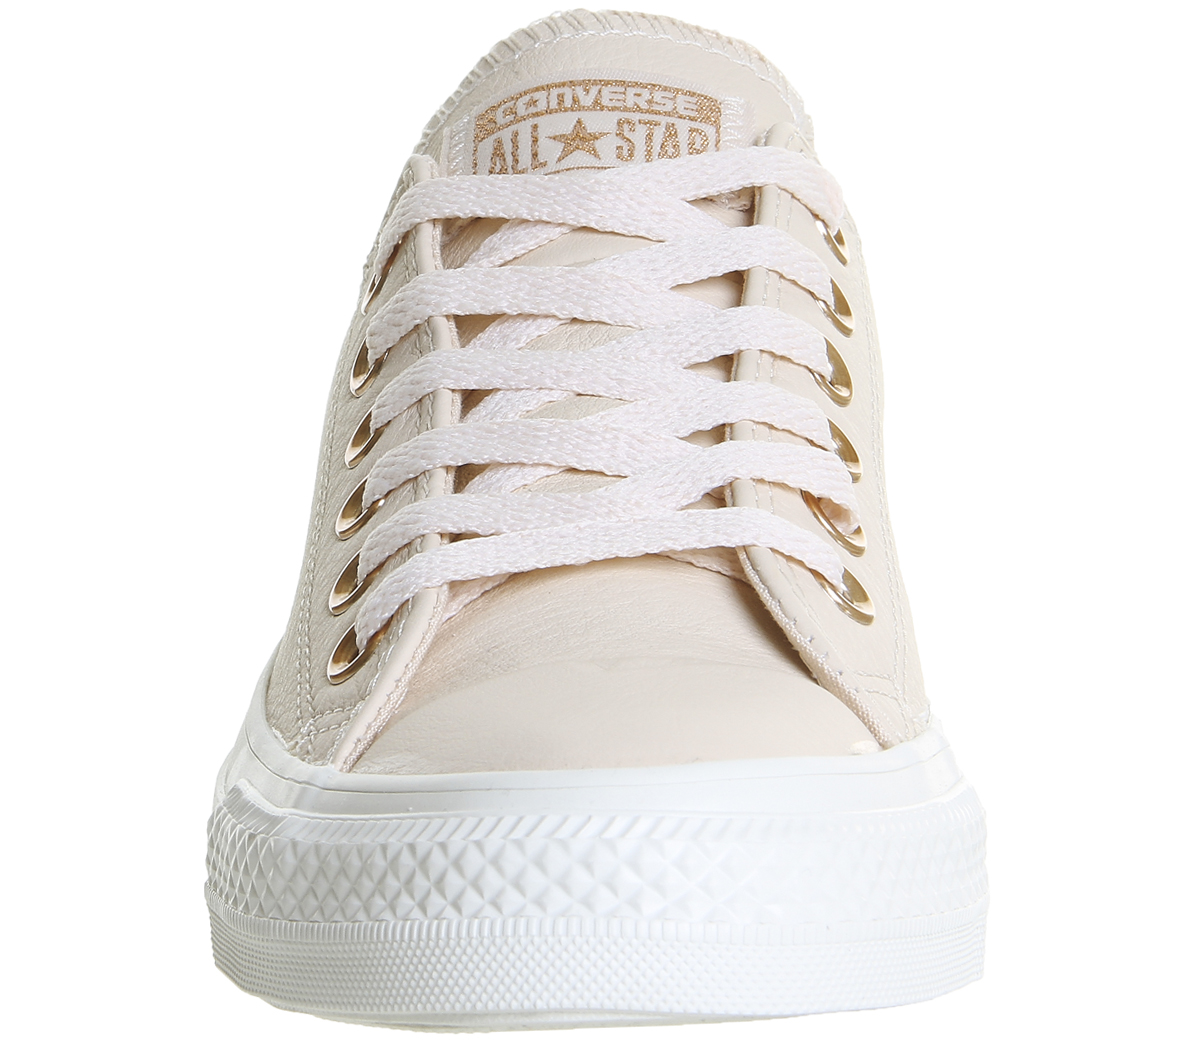 Sentinel Womens Converse All Star Low Leather EGRET PASTEL ROSE TAN BLUSH GOLD  EXCLUSIVE 27fd55fbf